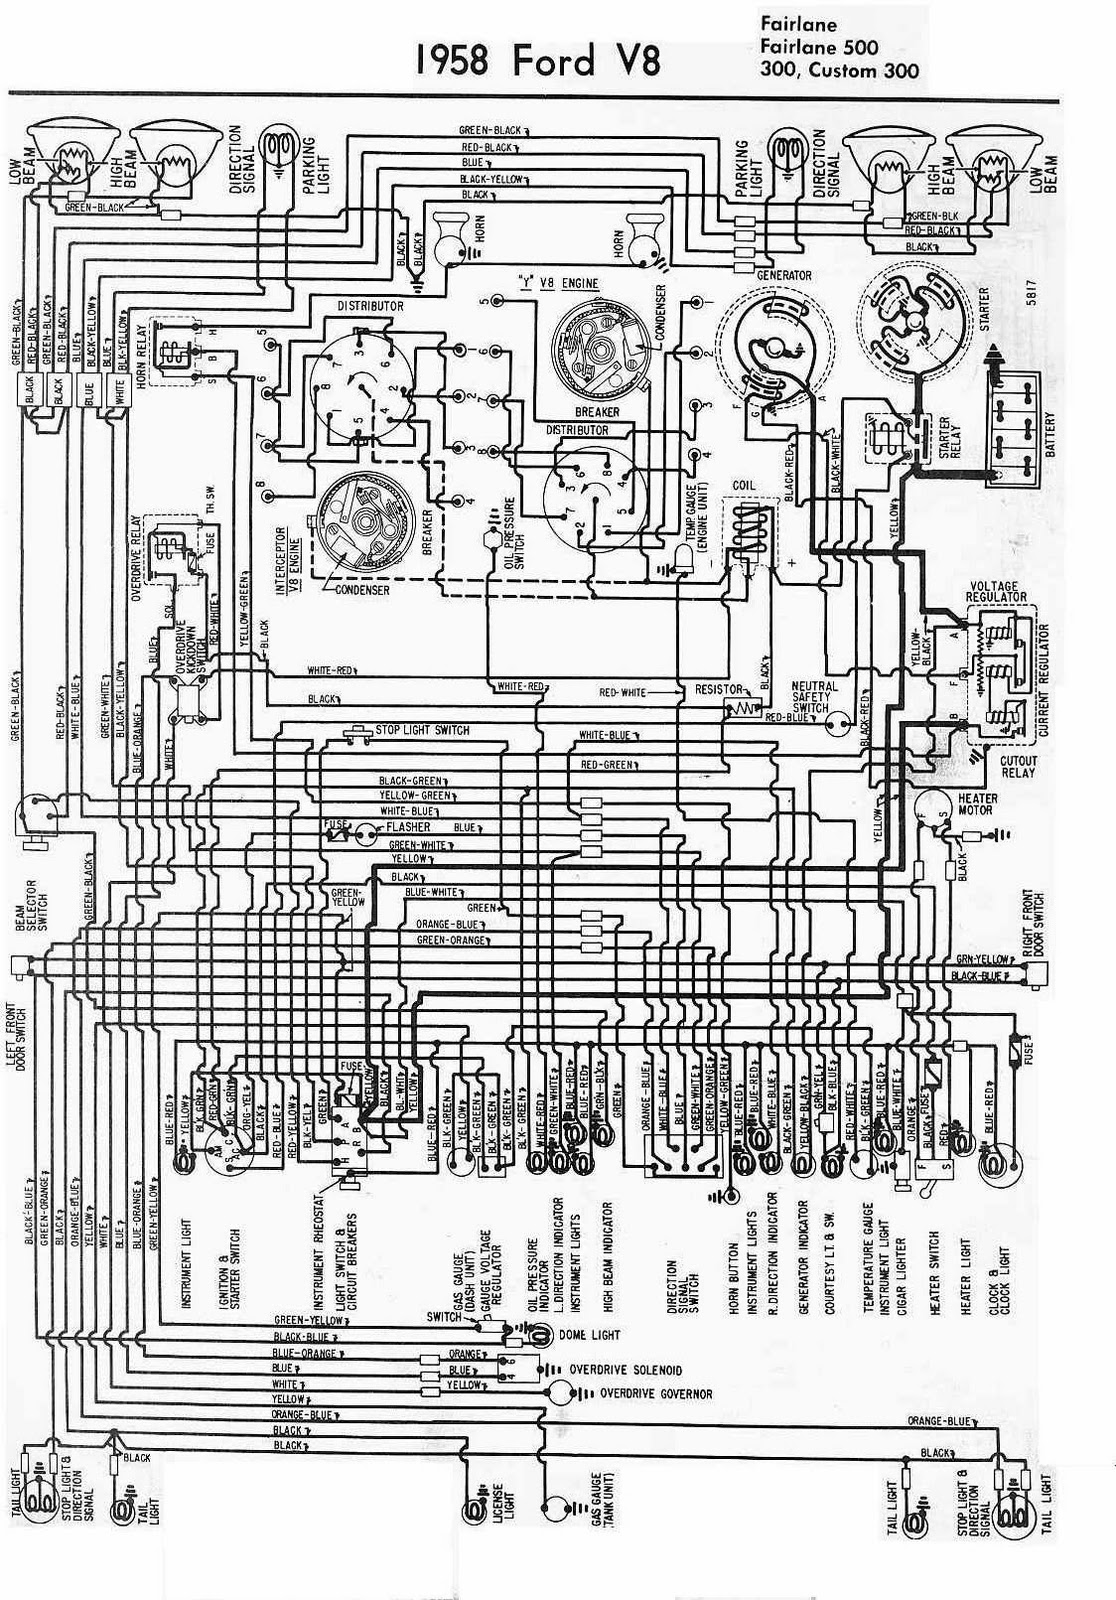 1964 galaxie wiring diagram basic guide wiring diagram u2022 rh desirehub co